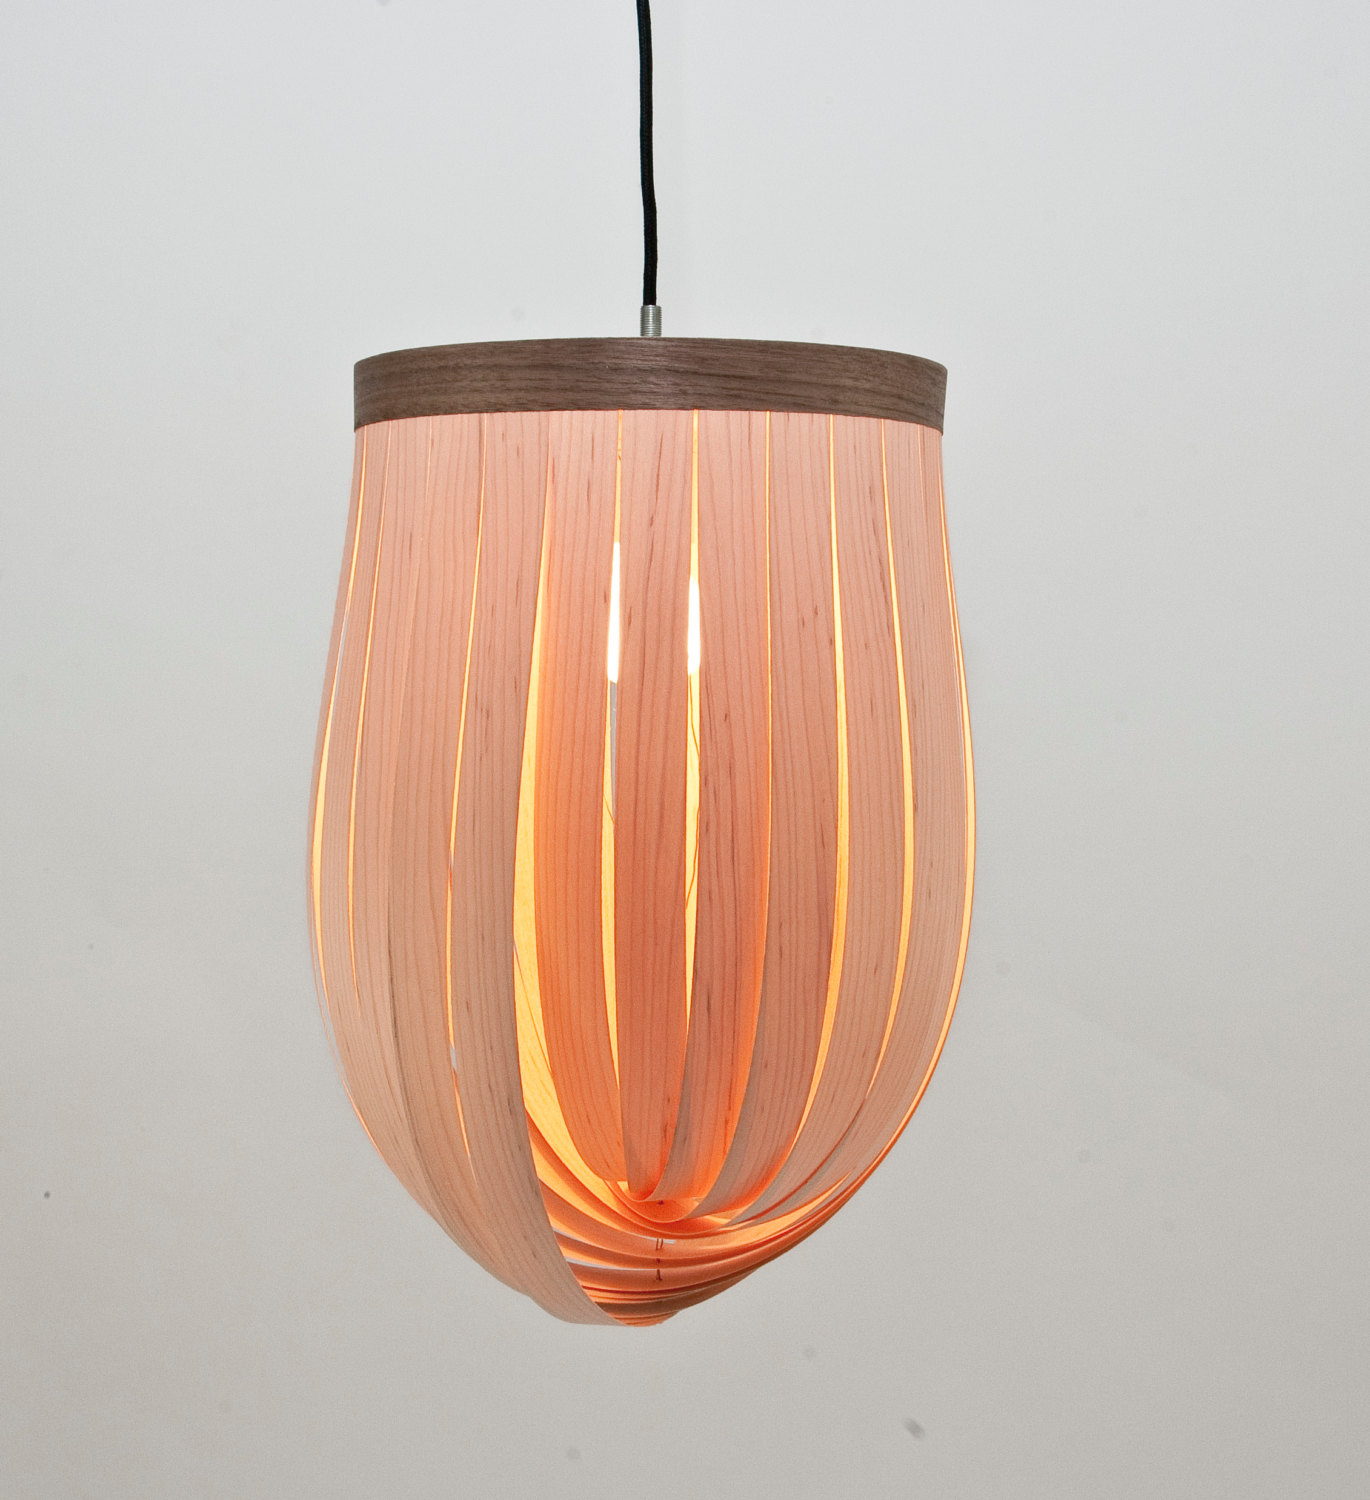 Adjustable Pendant Lamp from Wood 1 - Pendant Lighting - iD Lights